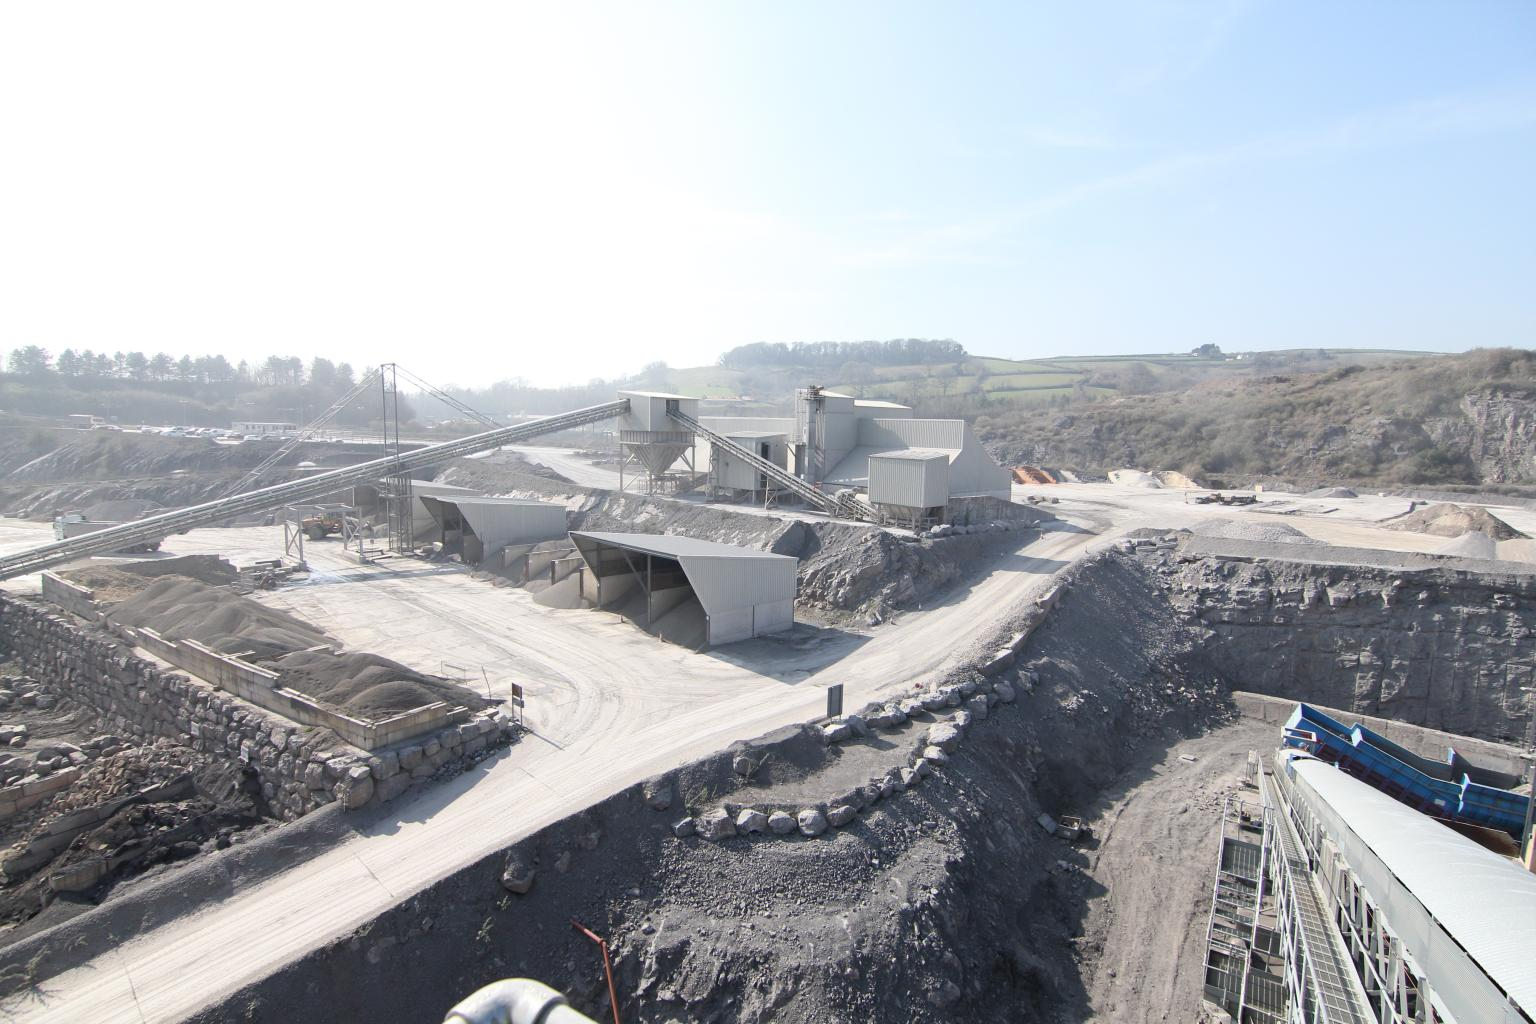 E&JW Glendinning is the largest independent supplier of quarry and concrete products both to the trade and direct to the end user in Devon and Cornwall, UK